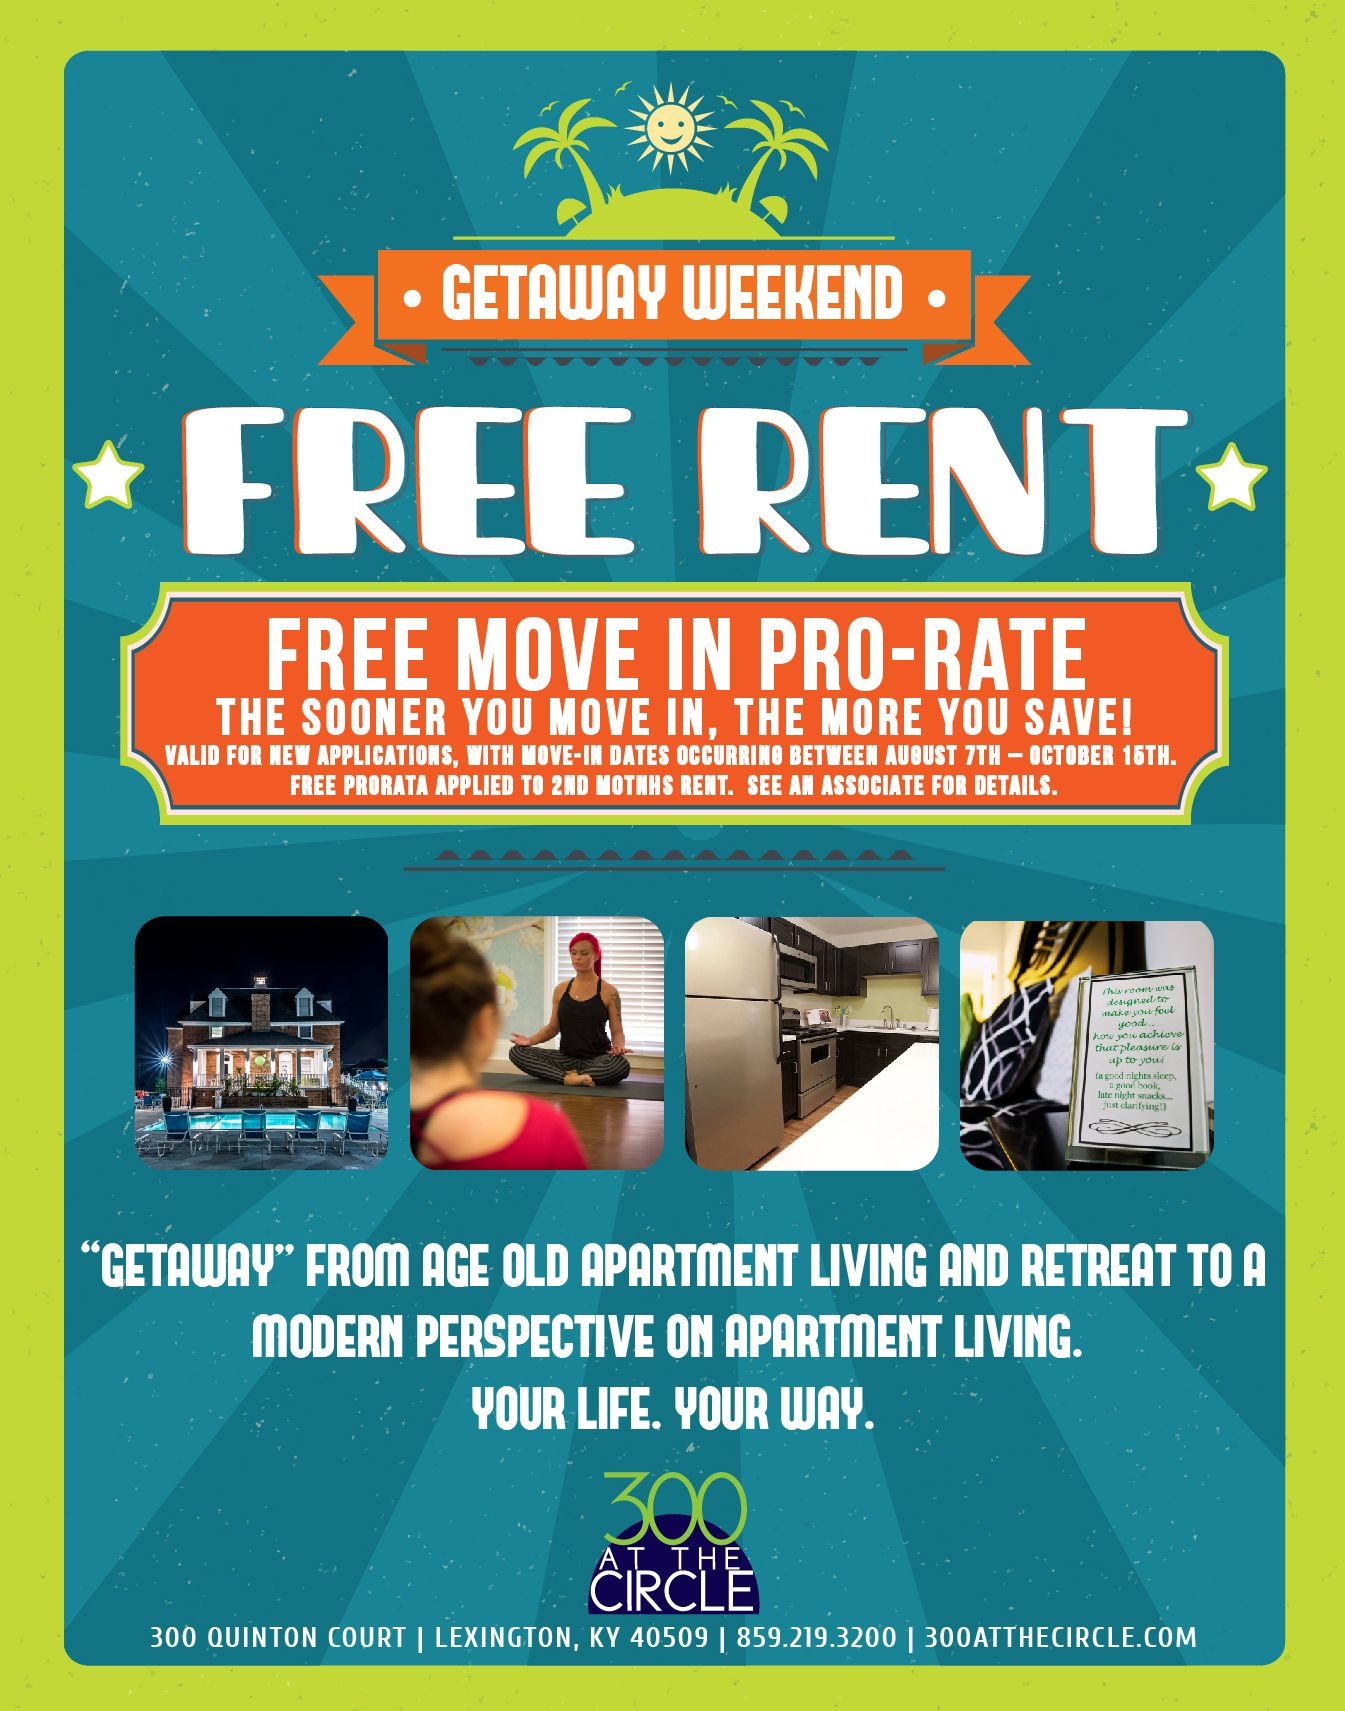 300ATC Free Rent Flyer | Apartment Marketing | Pinterest | Flyers ...